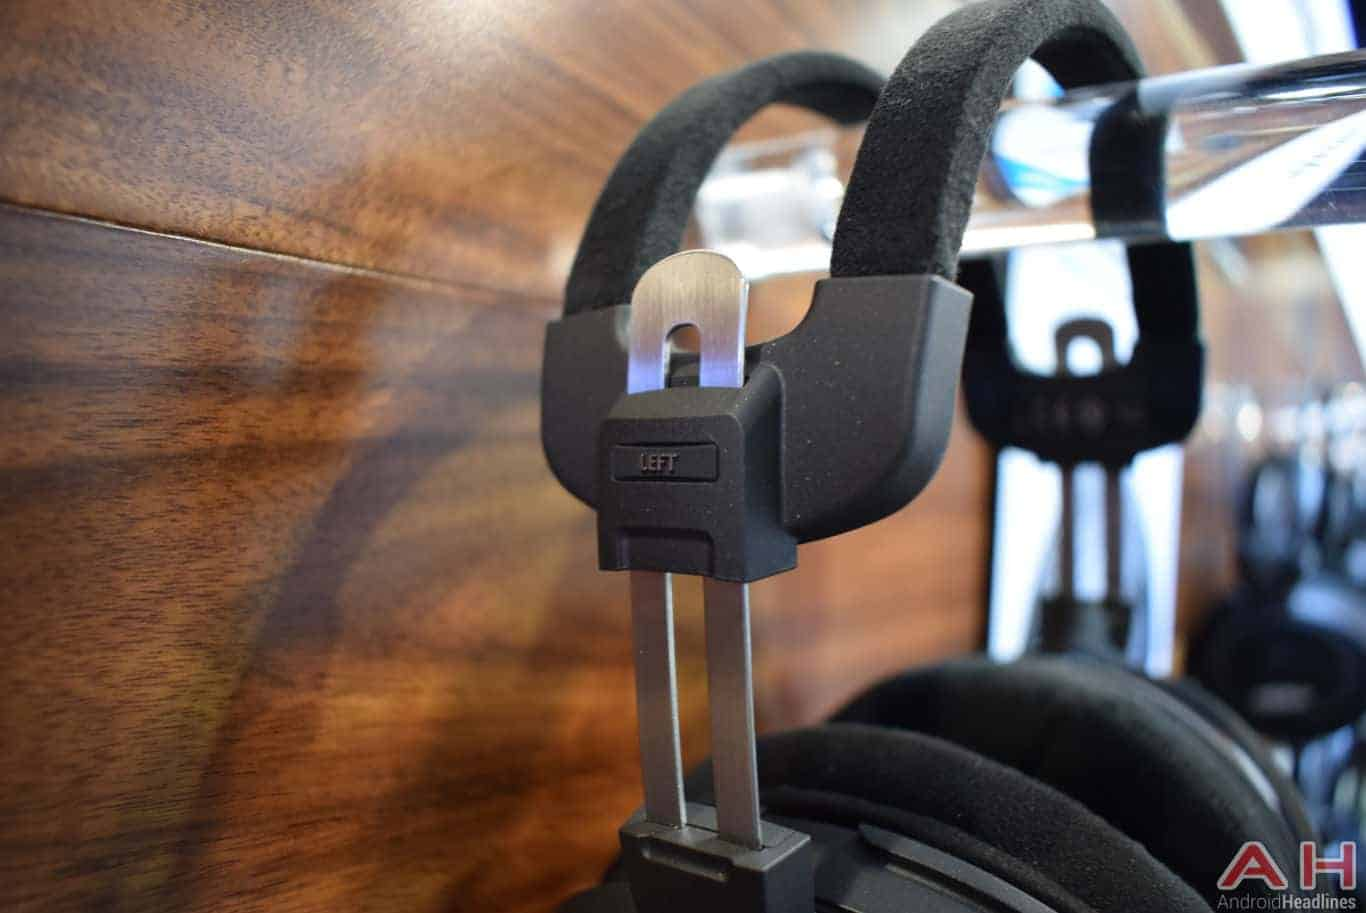 Hands on with audio technicas new line of headphones ces 2018 ath adx5000 sciox Image collections